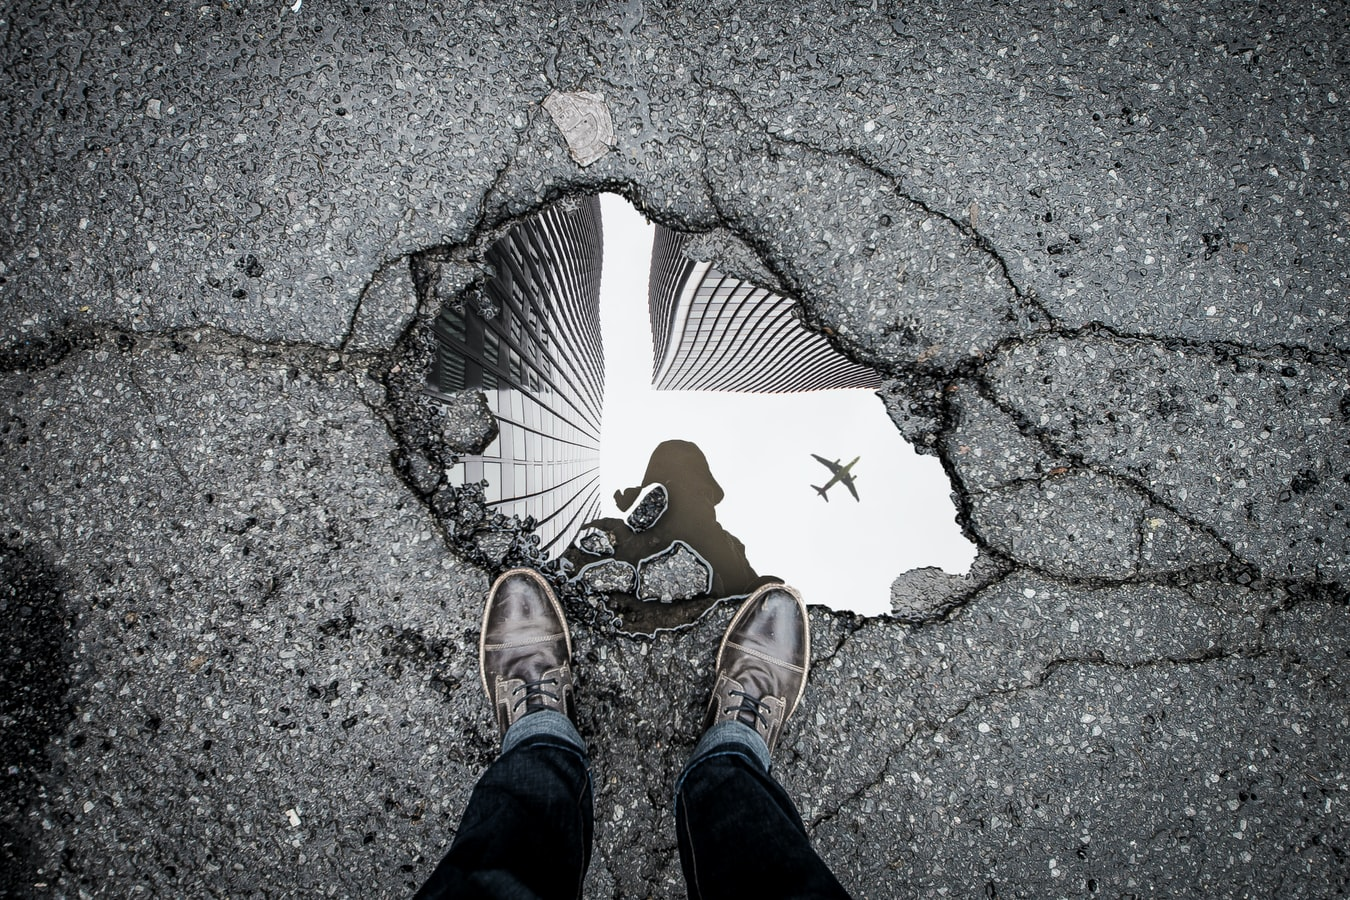 Person standing in front of reflective puddle